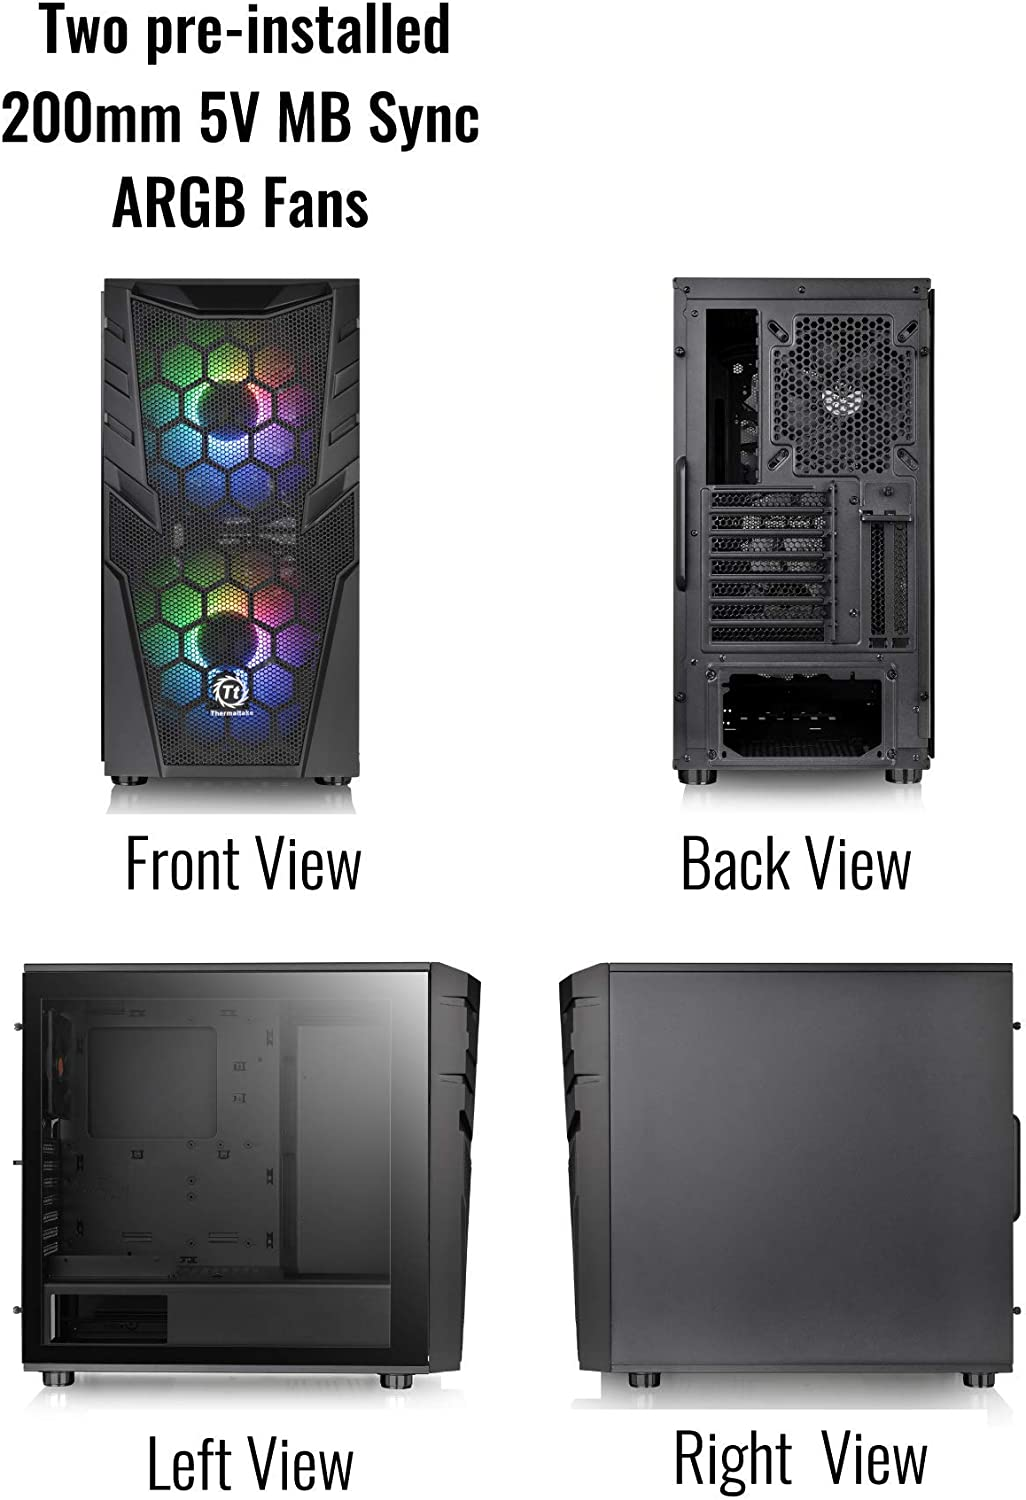 1 120mm Rear Black Fan Pre-Installed CA-1N6-00M1WN-00 Thermaltake Commander C35 Motherboard Sync ARGB ATX Mid Tower Computer Chassis with 2 200mm ARGB 5V Motherboard Sync RGB Front Fans